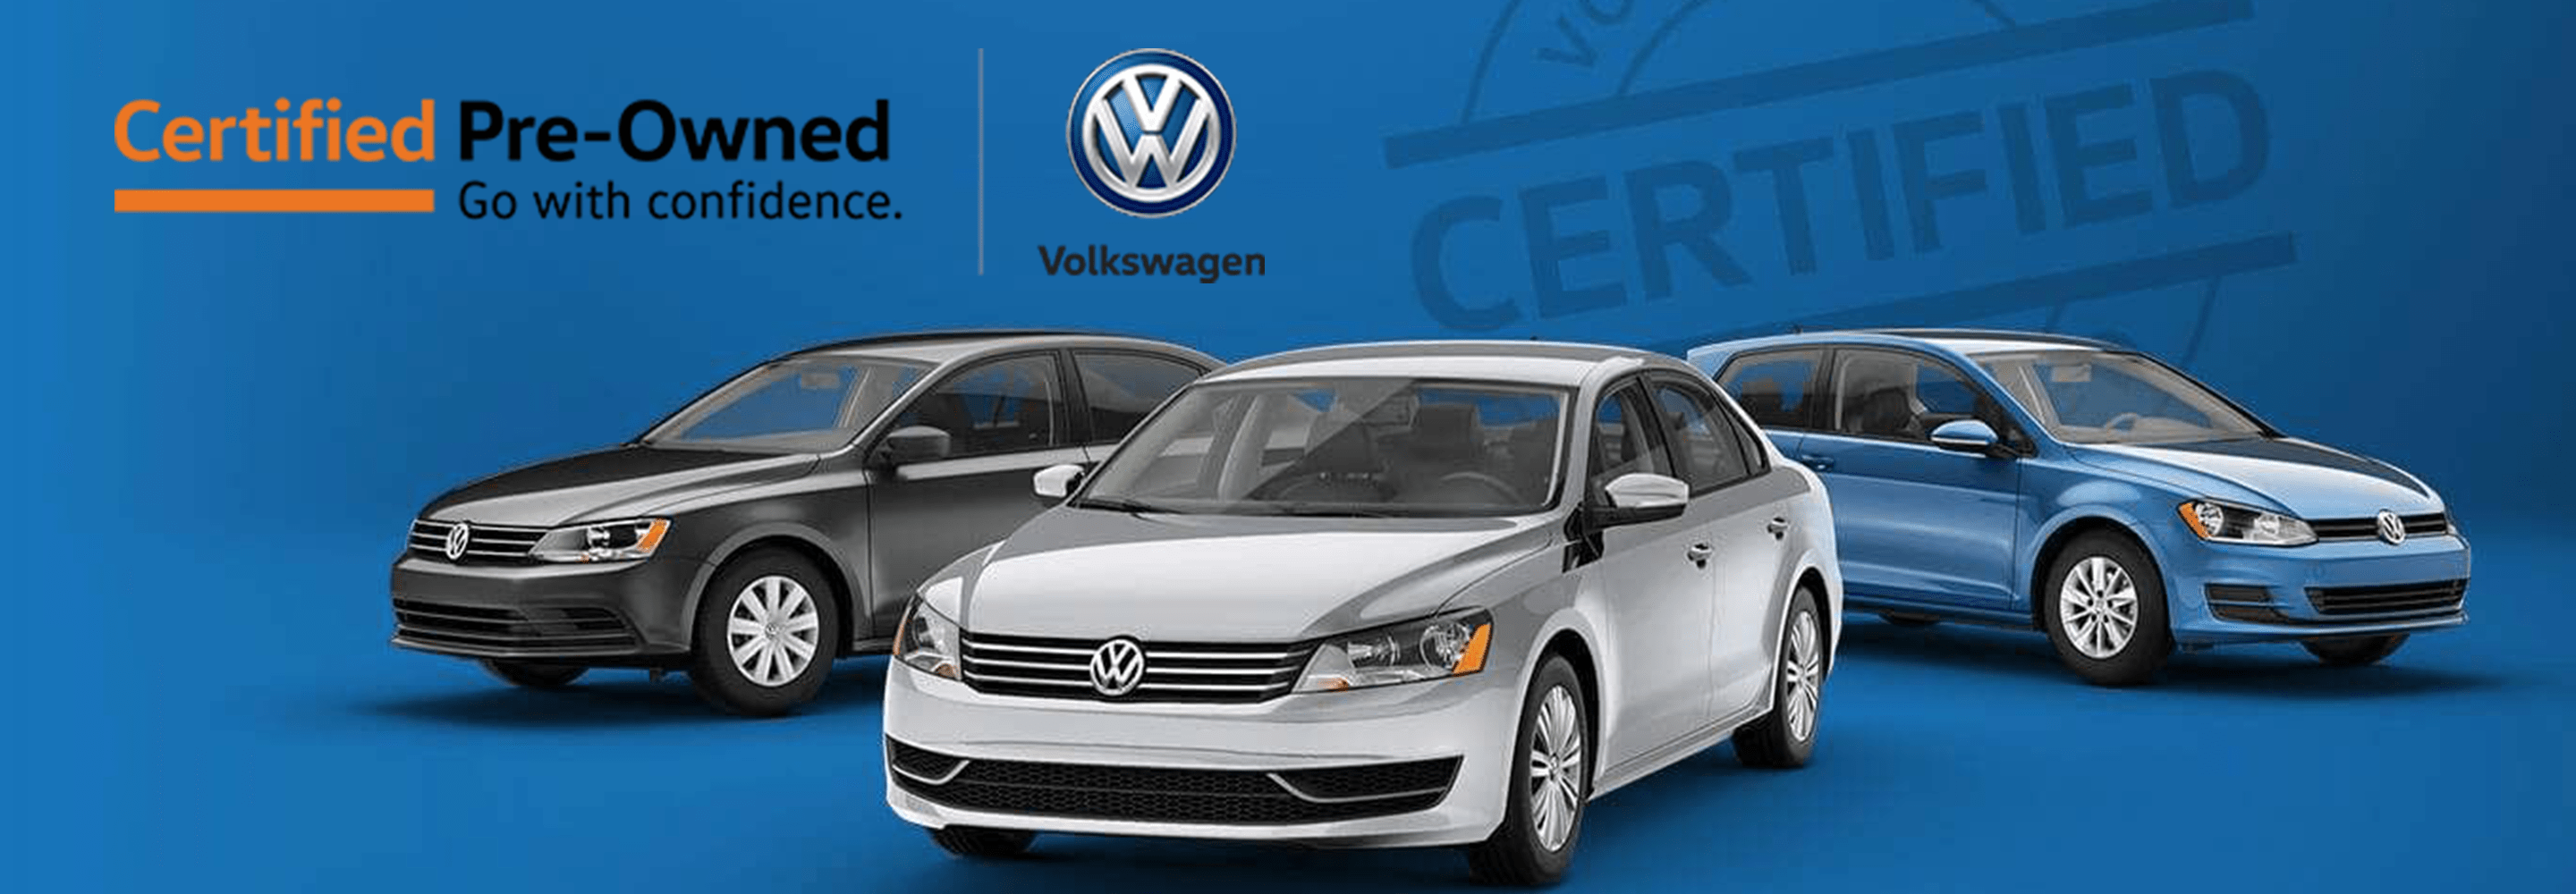 certified pre owned volkswagen for sale in el paso tx hoy volkswagen el paso dealership. Black Bedroom Furniture Sets. Home Design Ideas